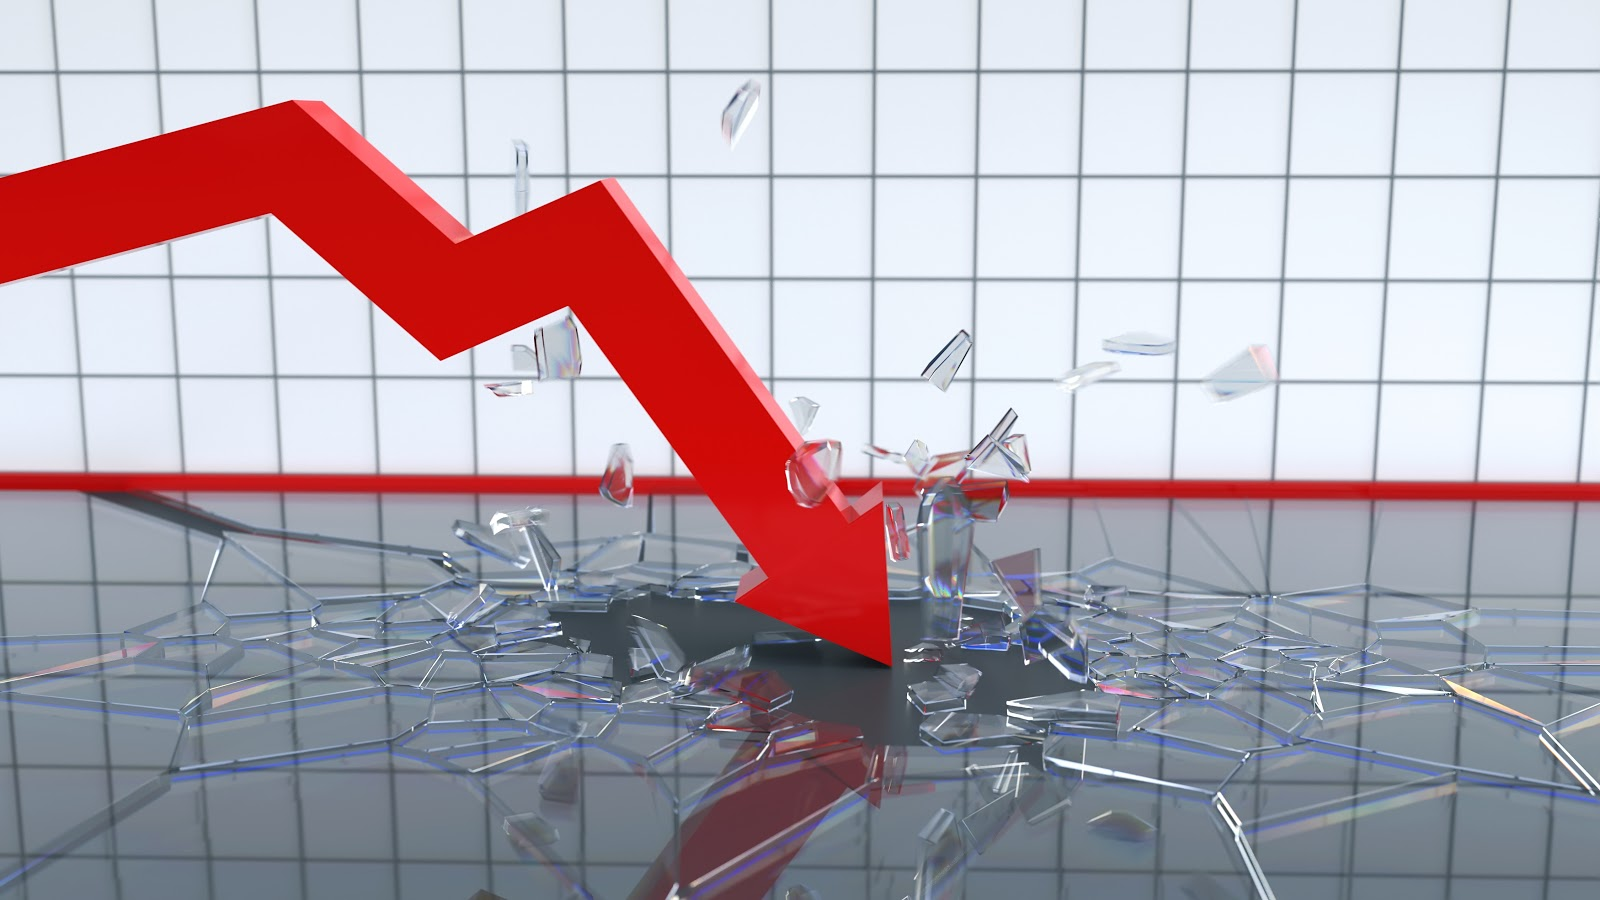 Picture with line graph crashing through glass floor